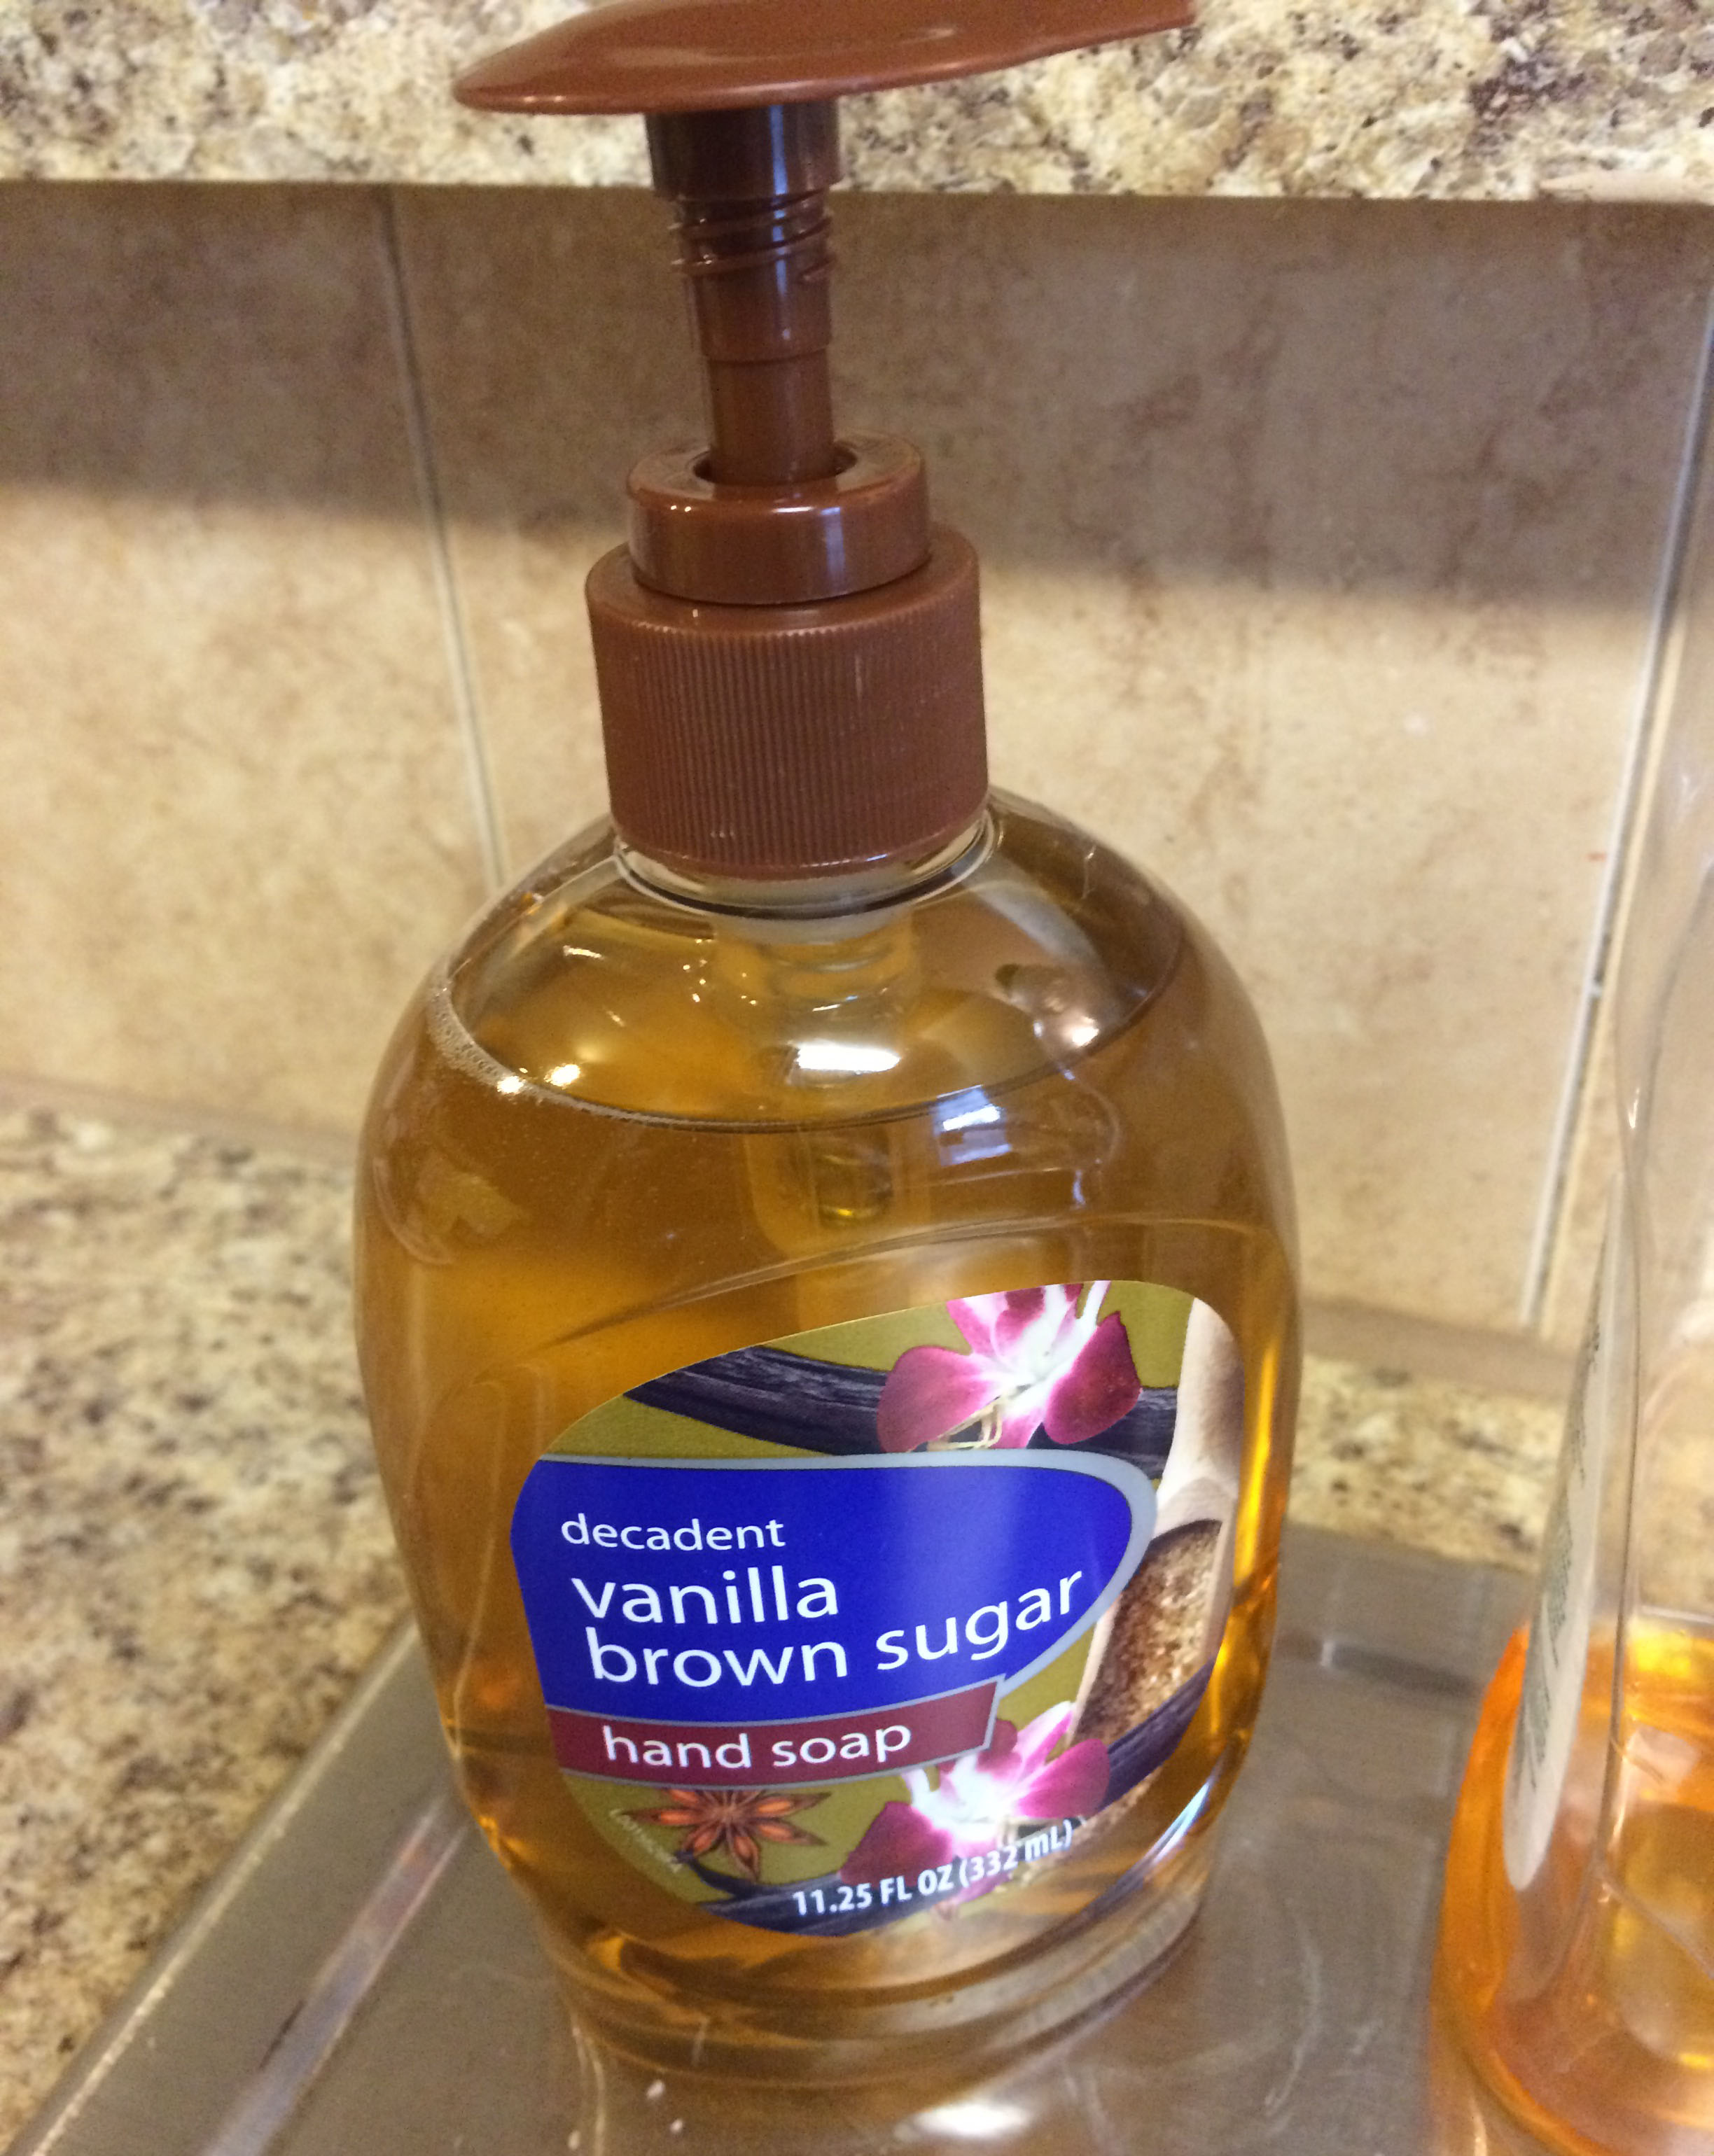 The vanilla brown sugar hand soap that I purchased resting on my kitchen counter.